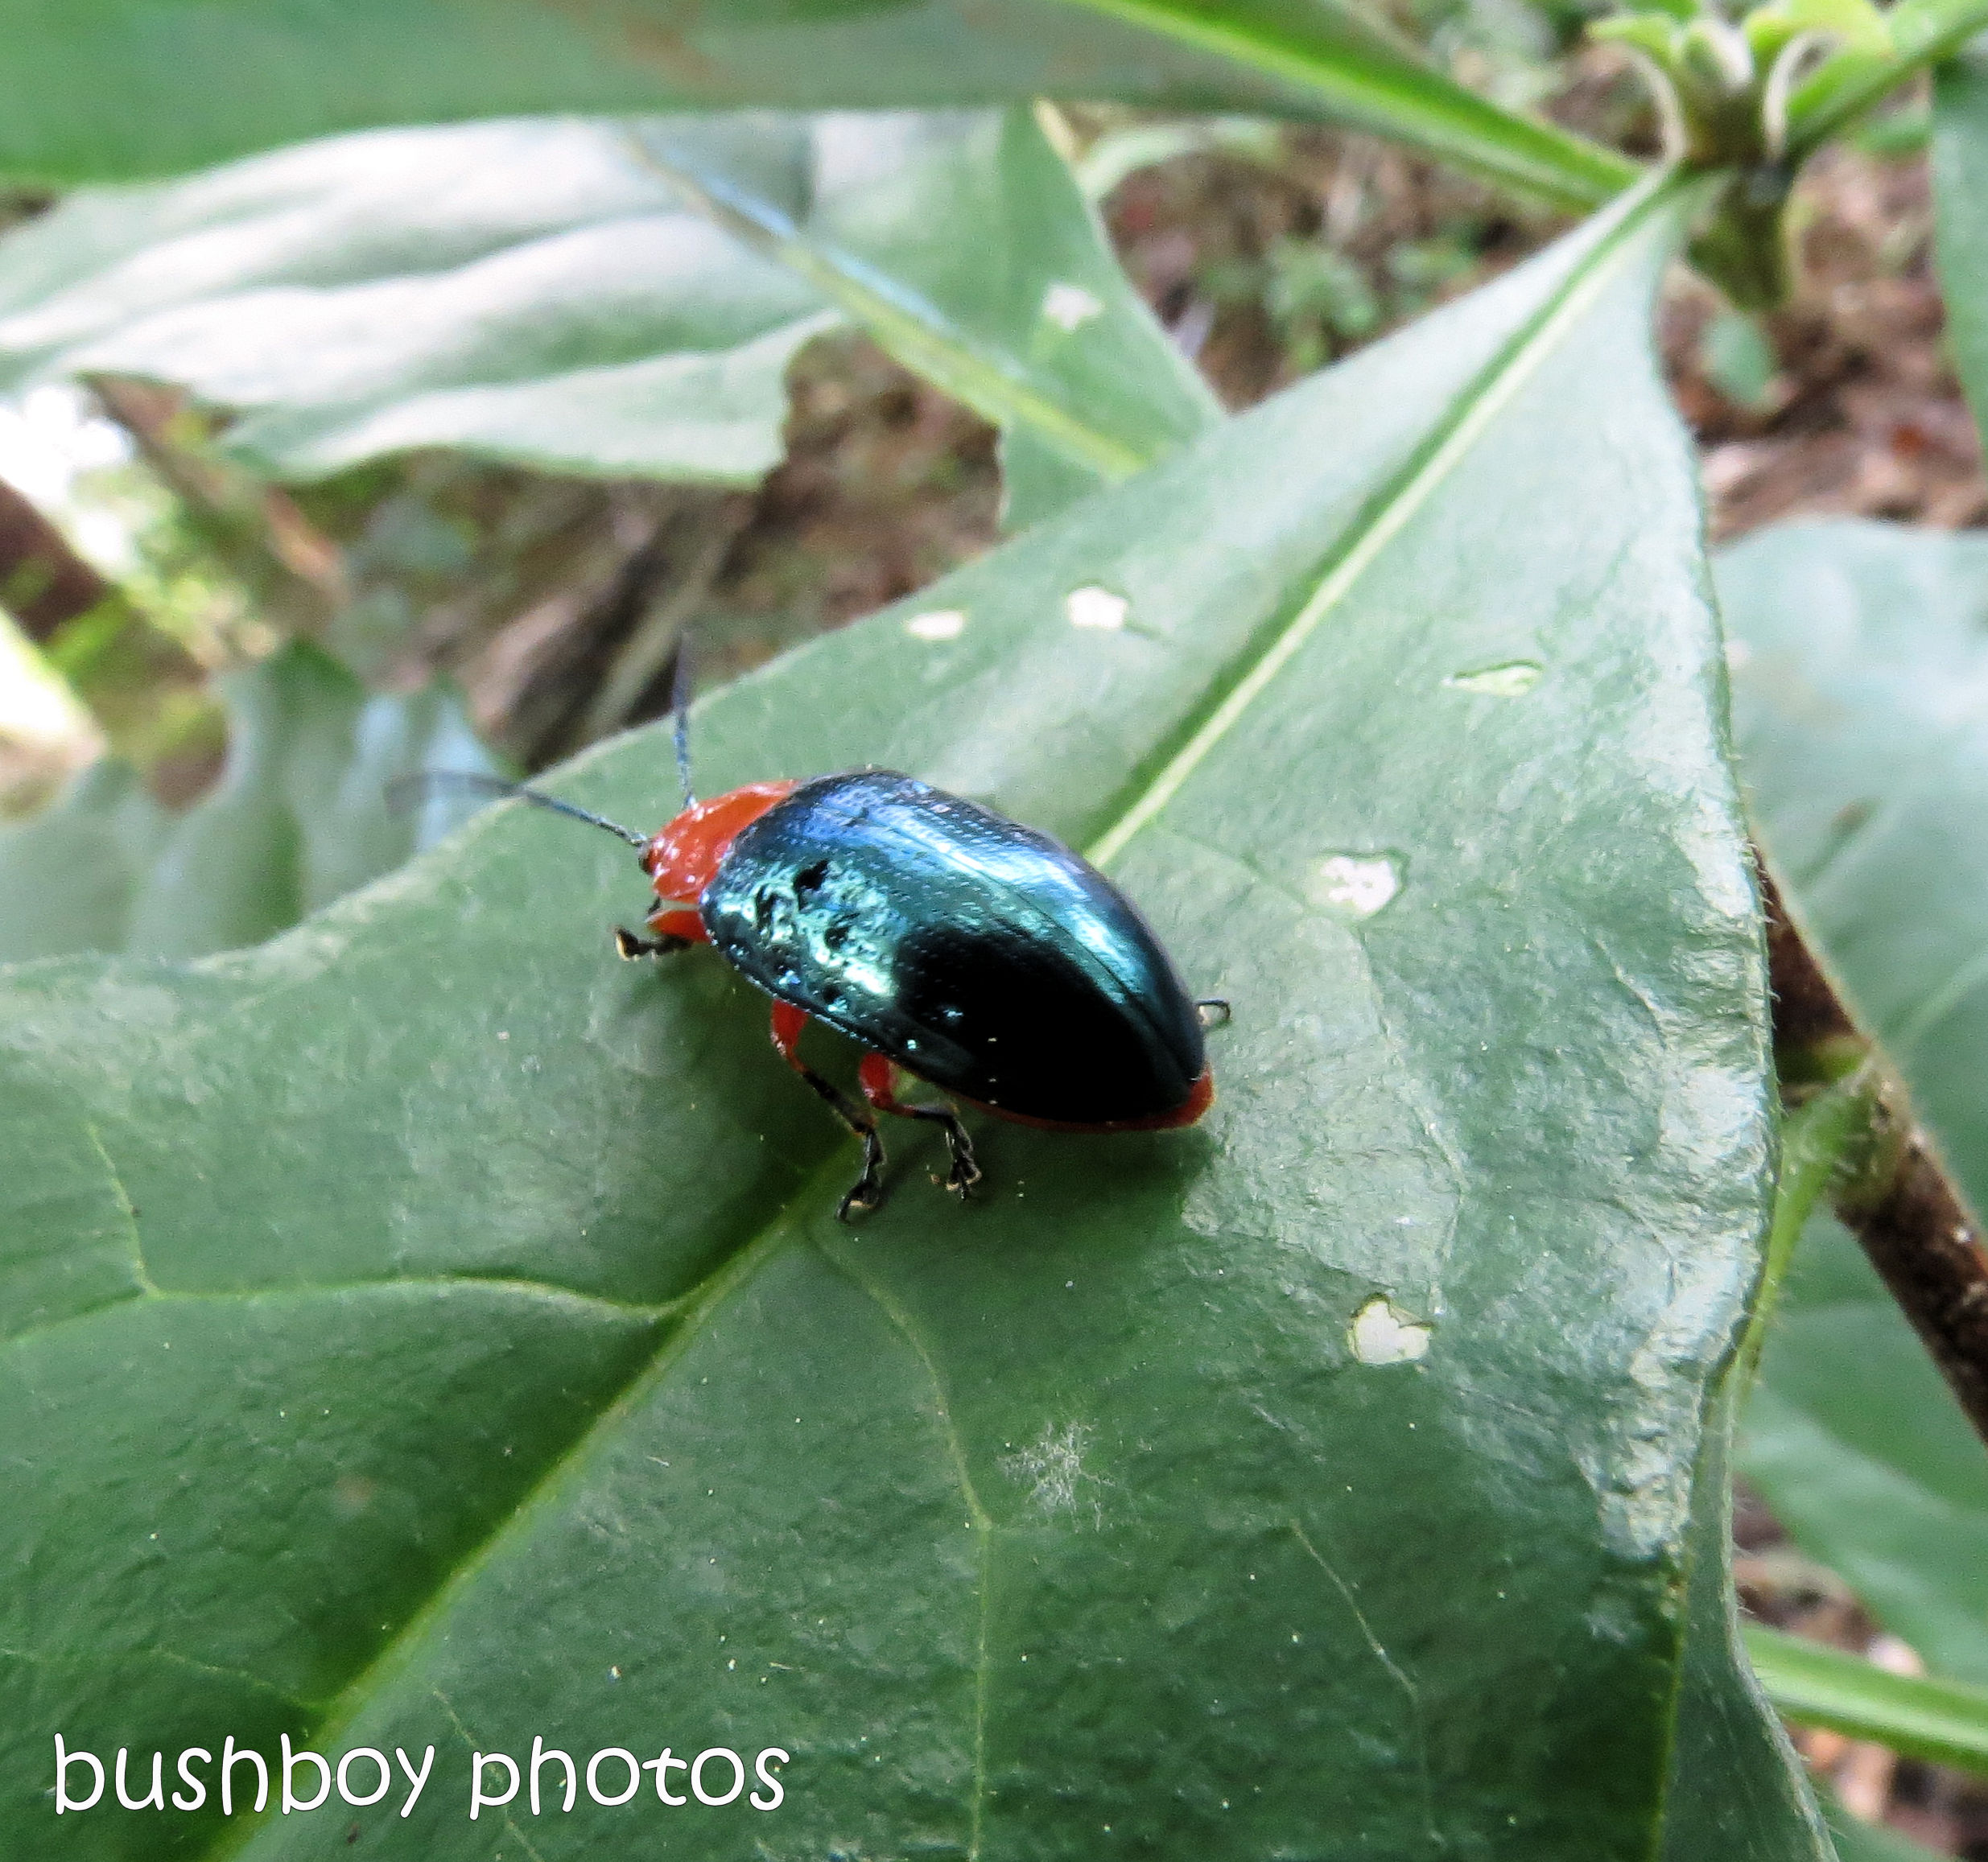 170711_blog challenge_bugs_beetle_red green